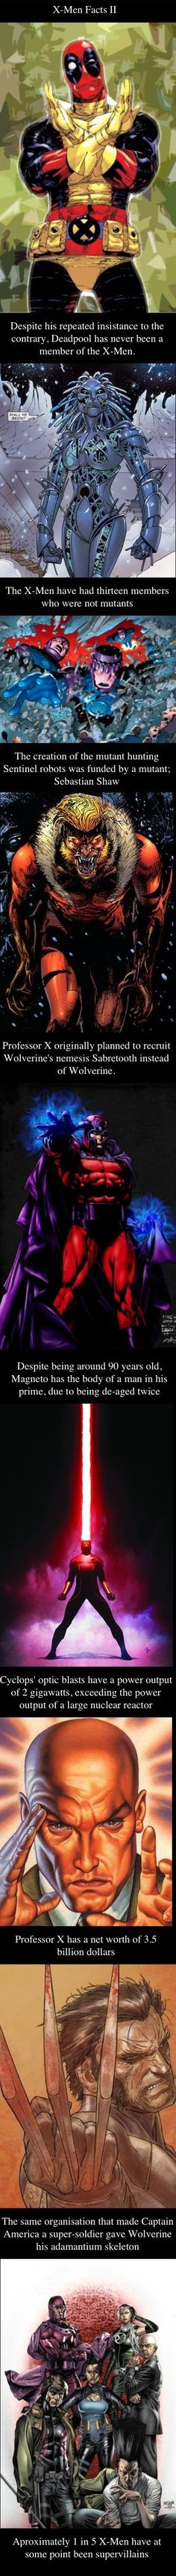 X-Men Facts Compilation Part II // funny pictures - funny photos - funny images - funny pics - funny quotes - #lol #humor #funnypictures